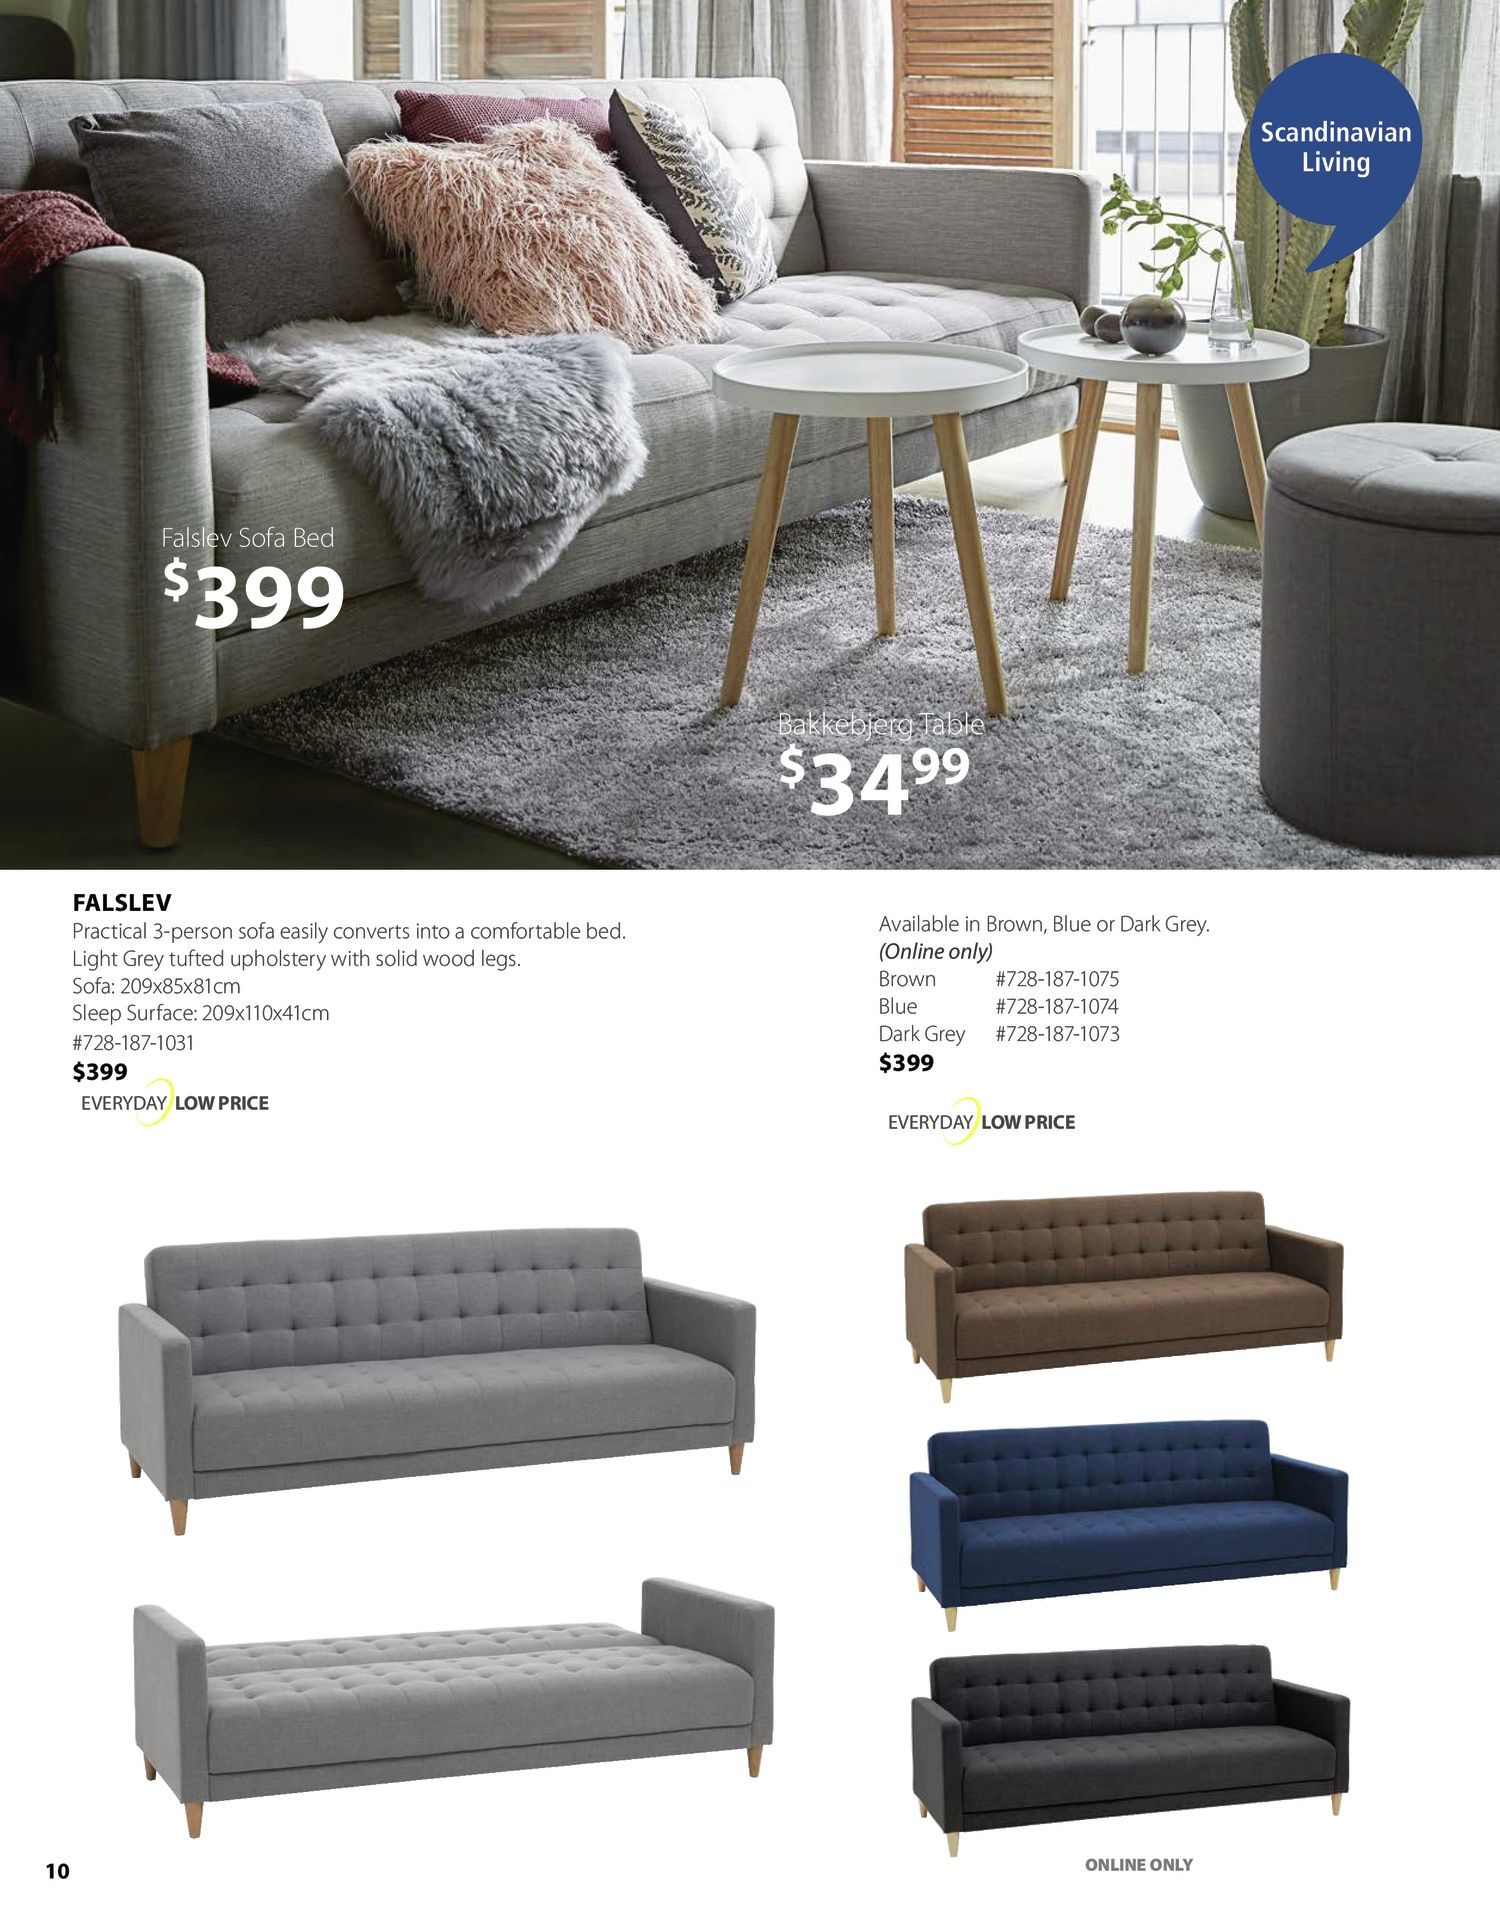 Jysk - Furniture Catalogue - Be Inspired - Page 10